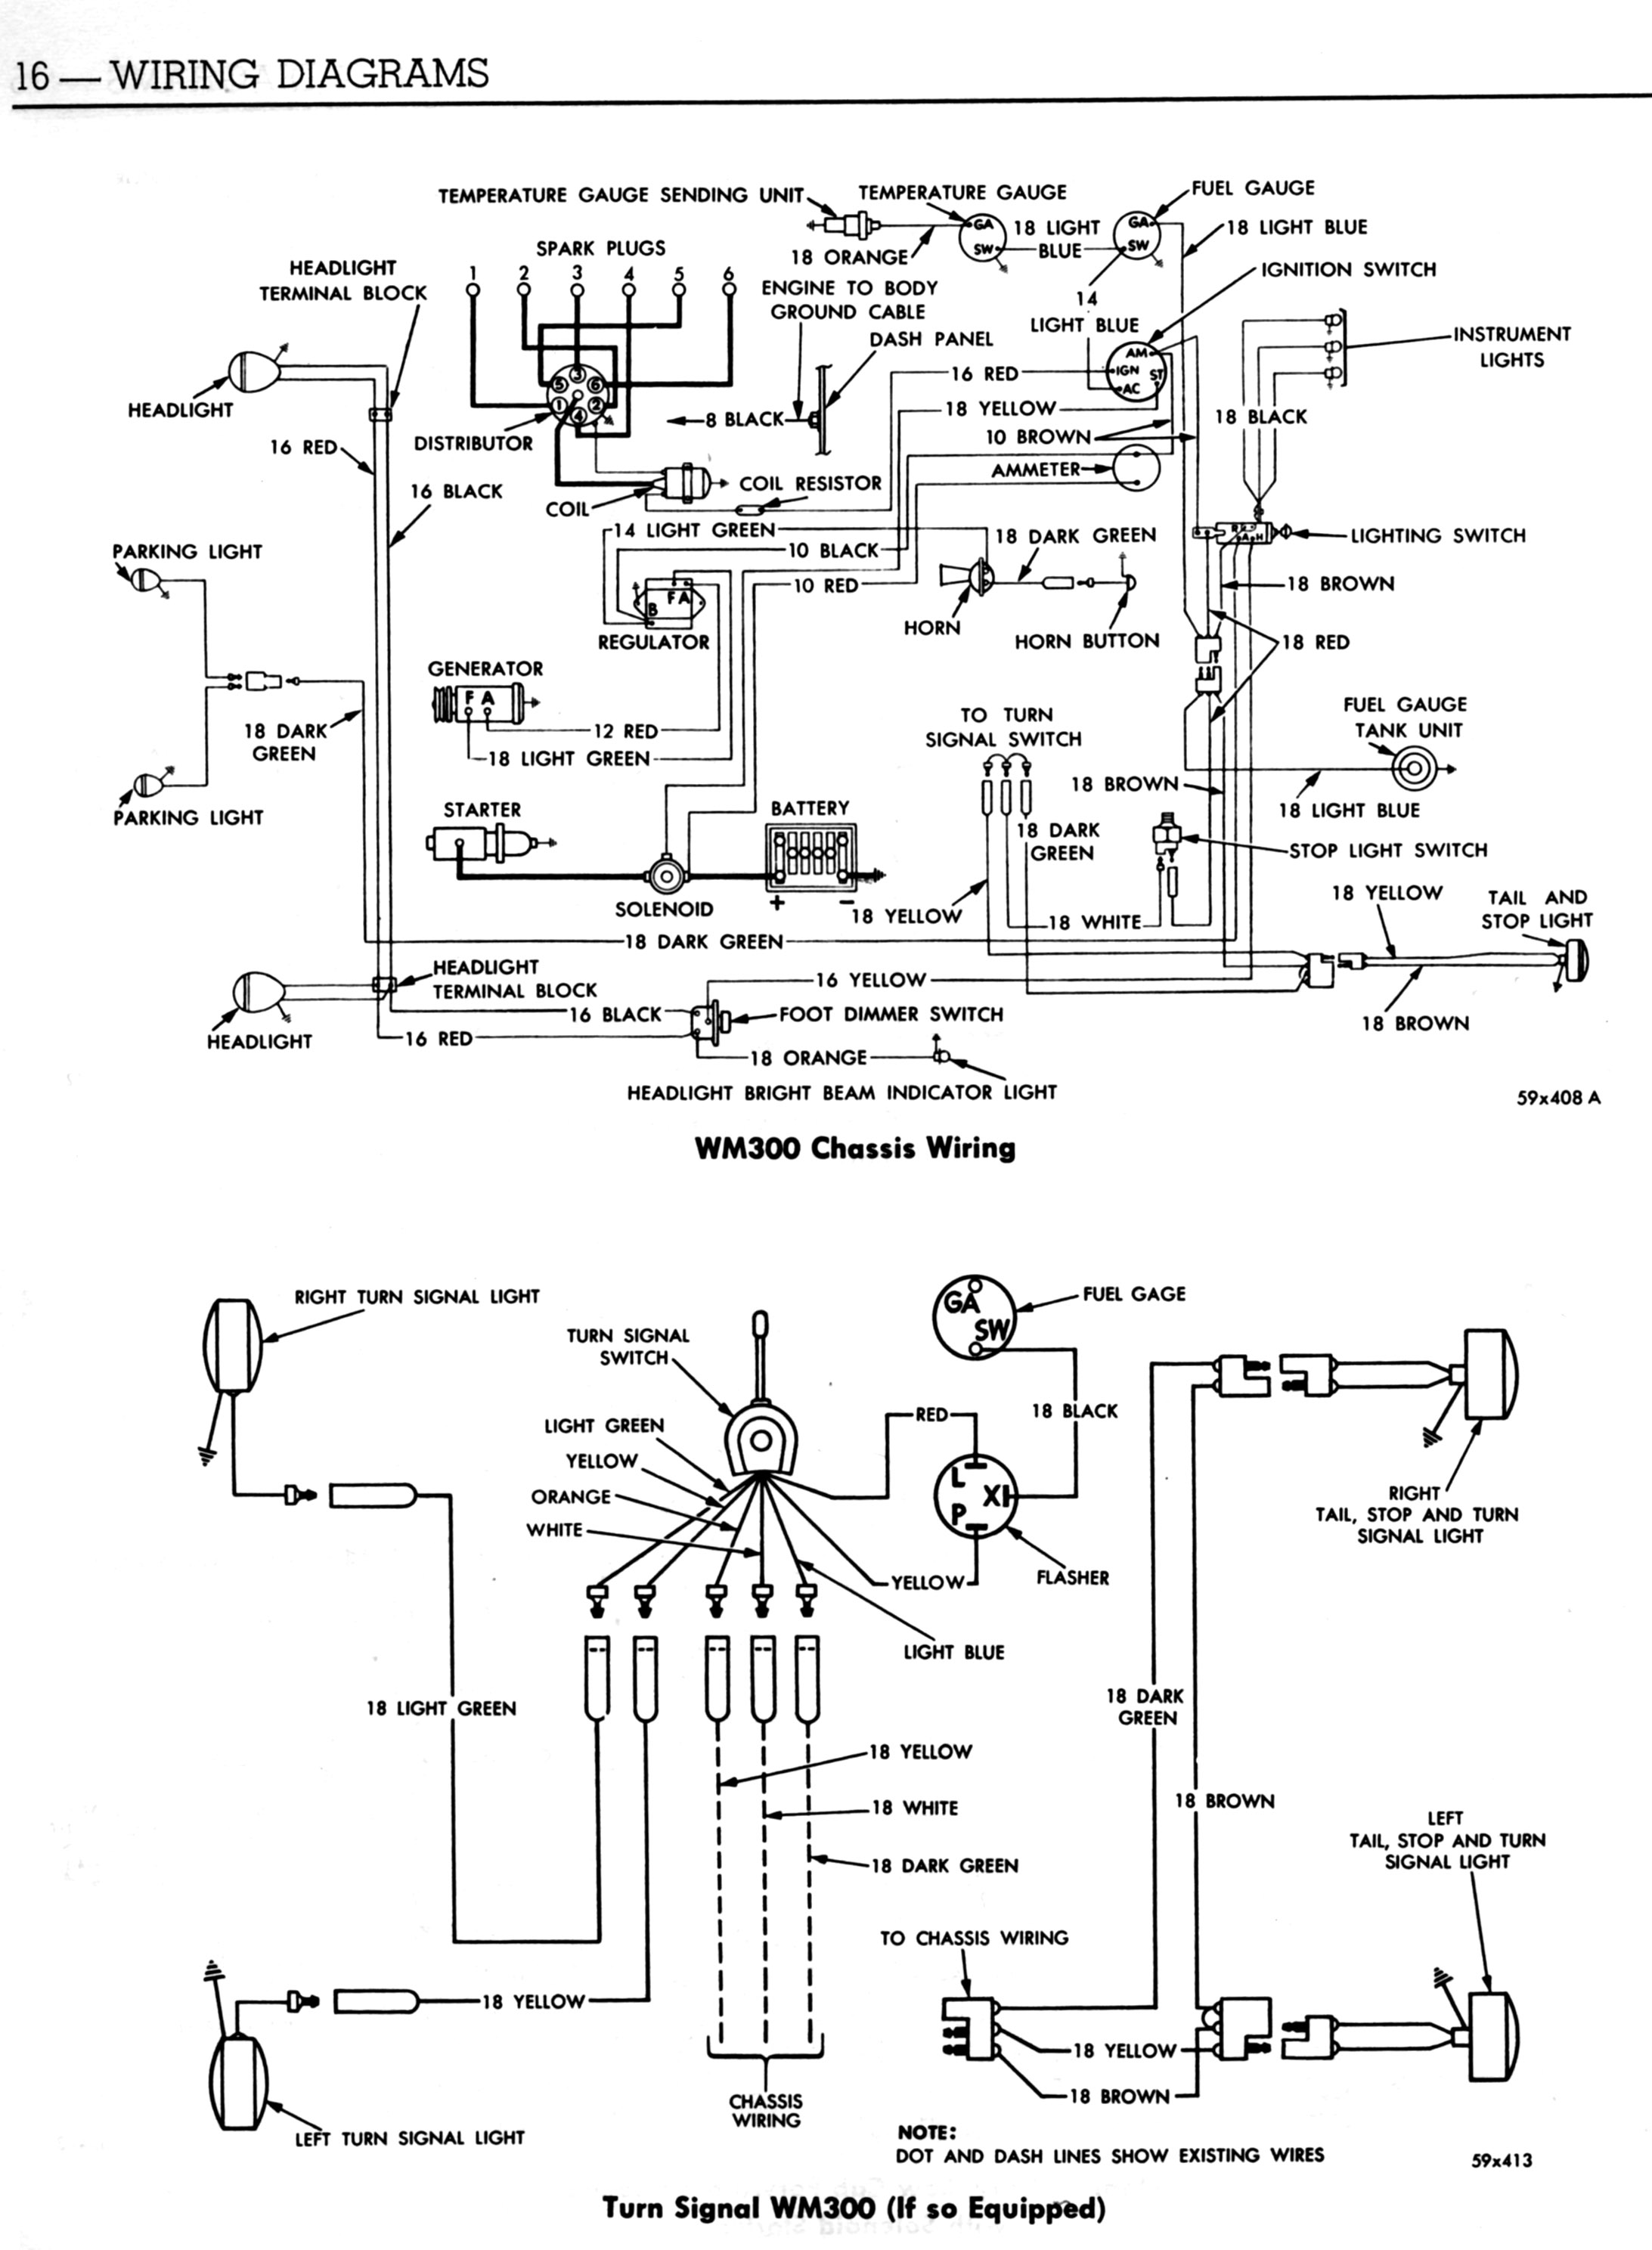 Distributor Cap And Spark Plug Wire Diagram